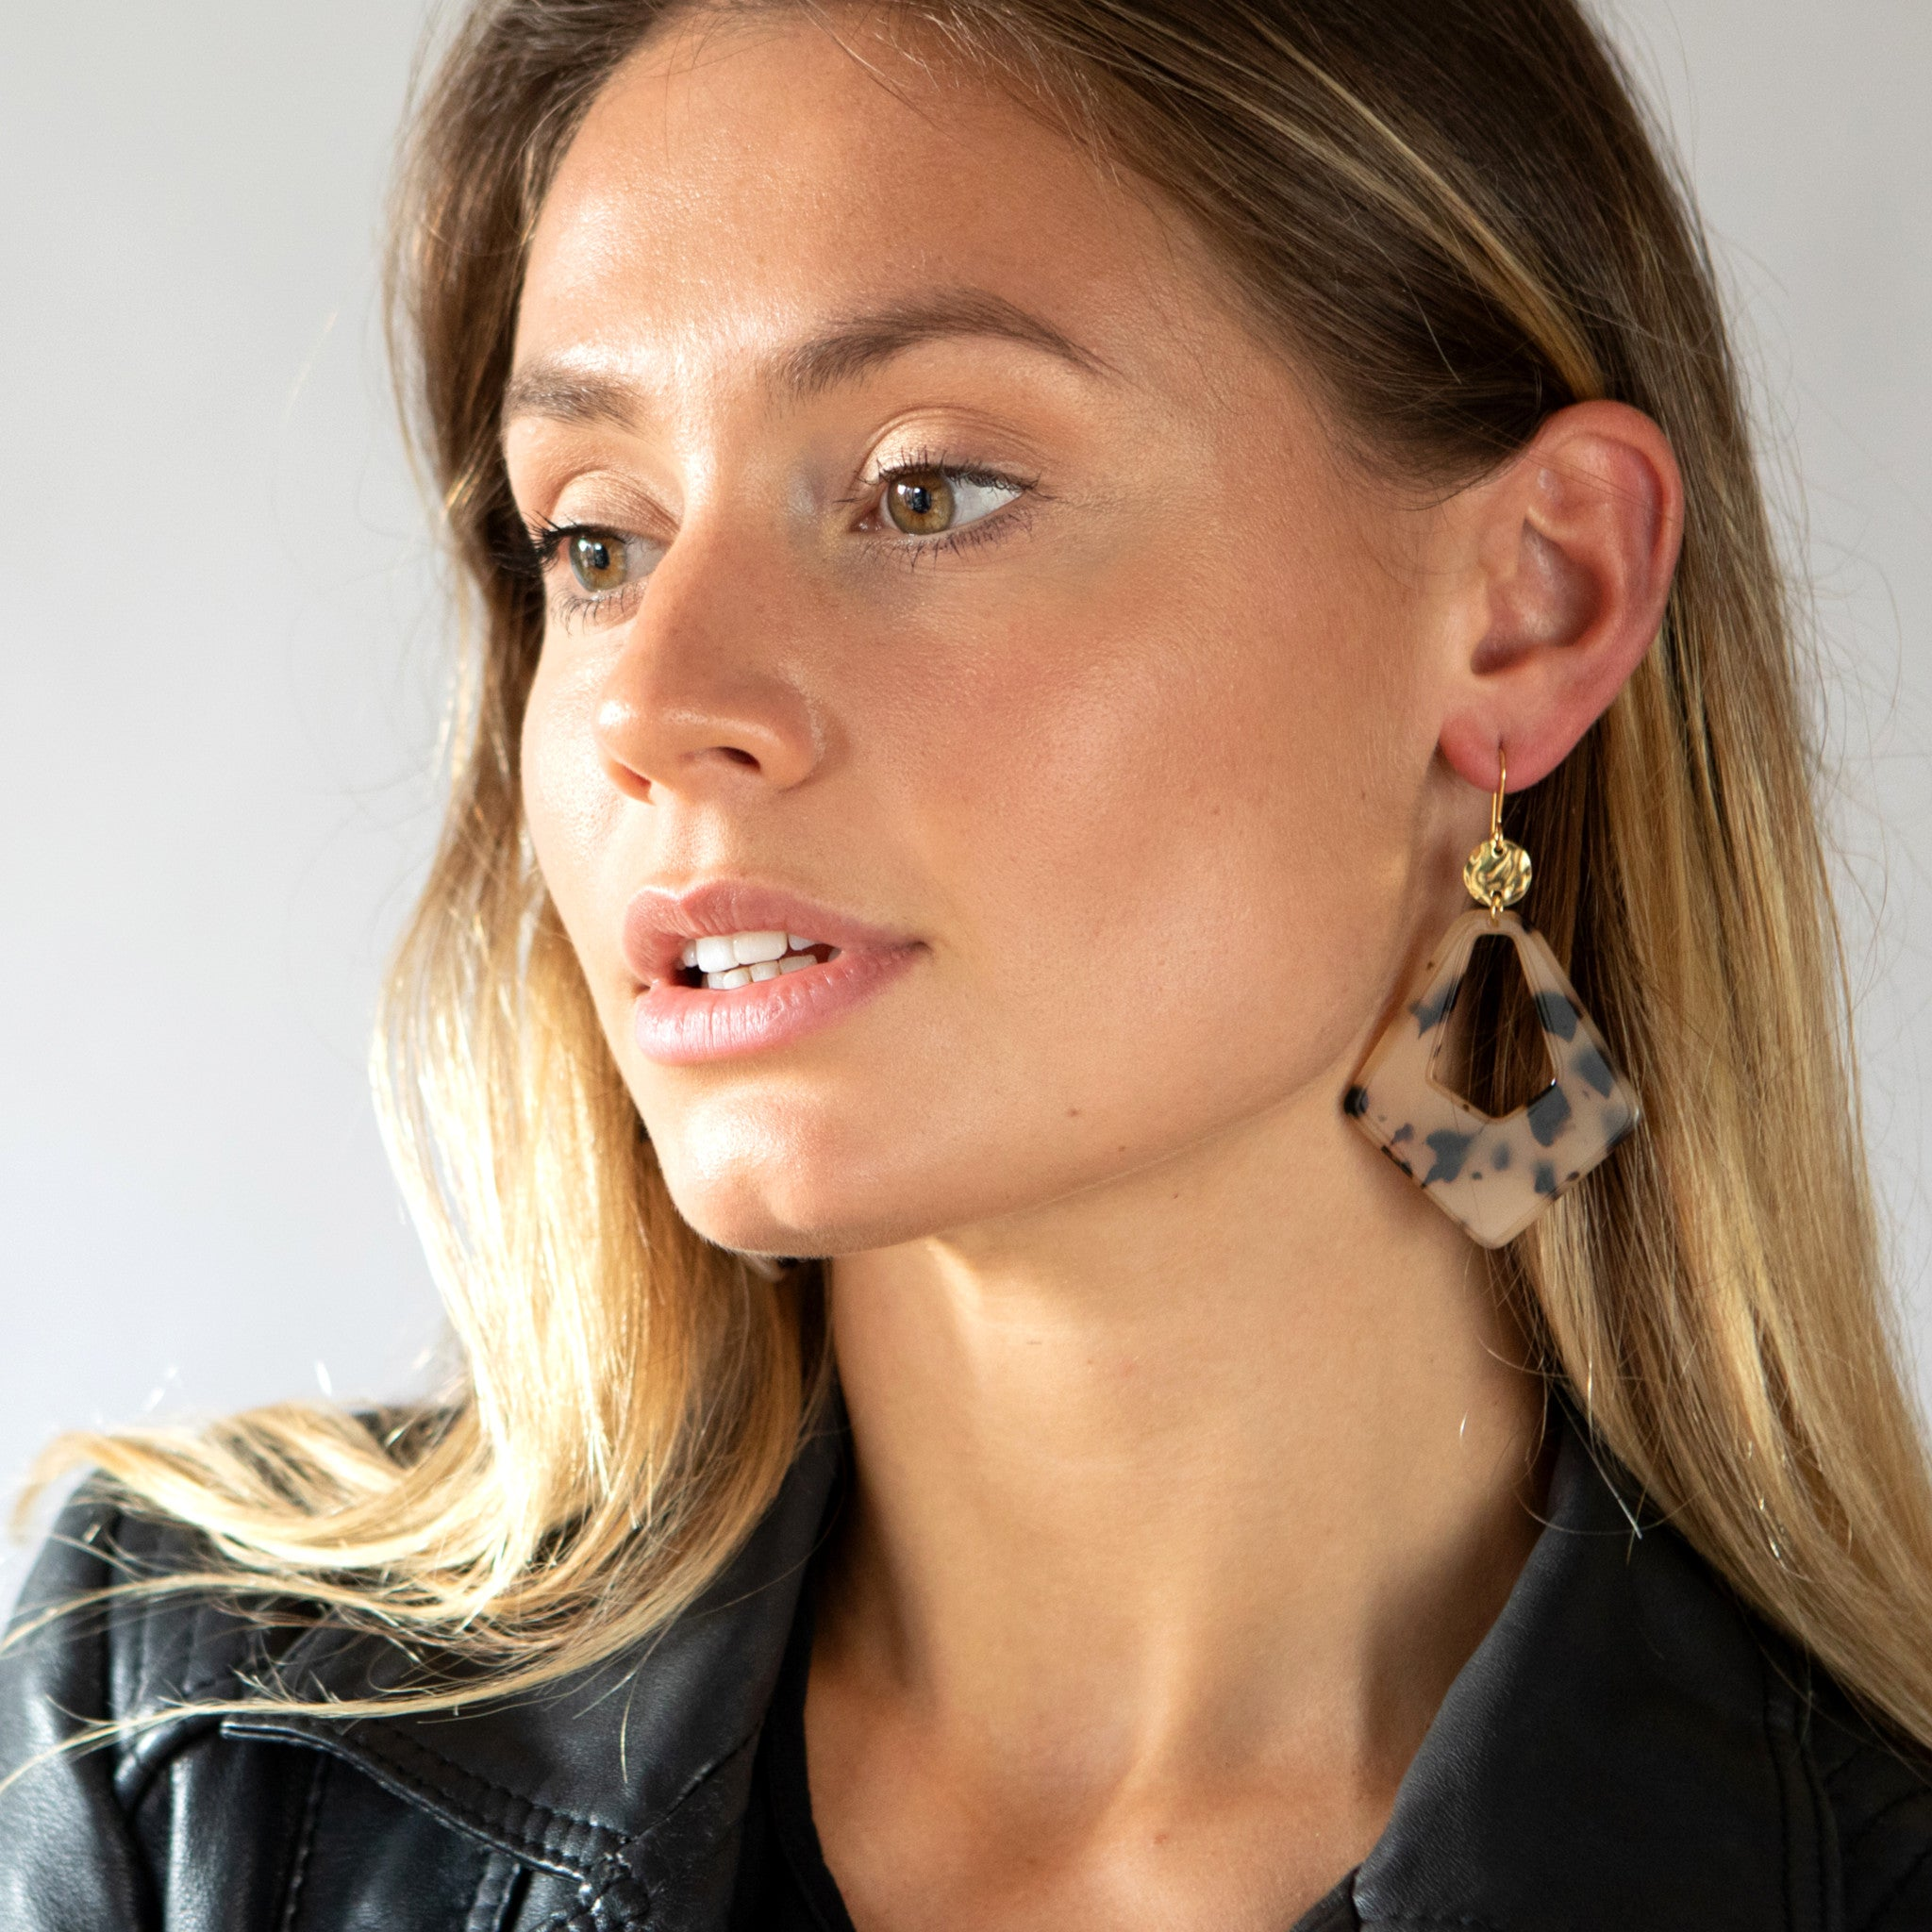 Acrylic teardrop earrings - Mara studio